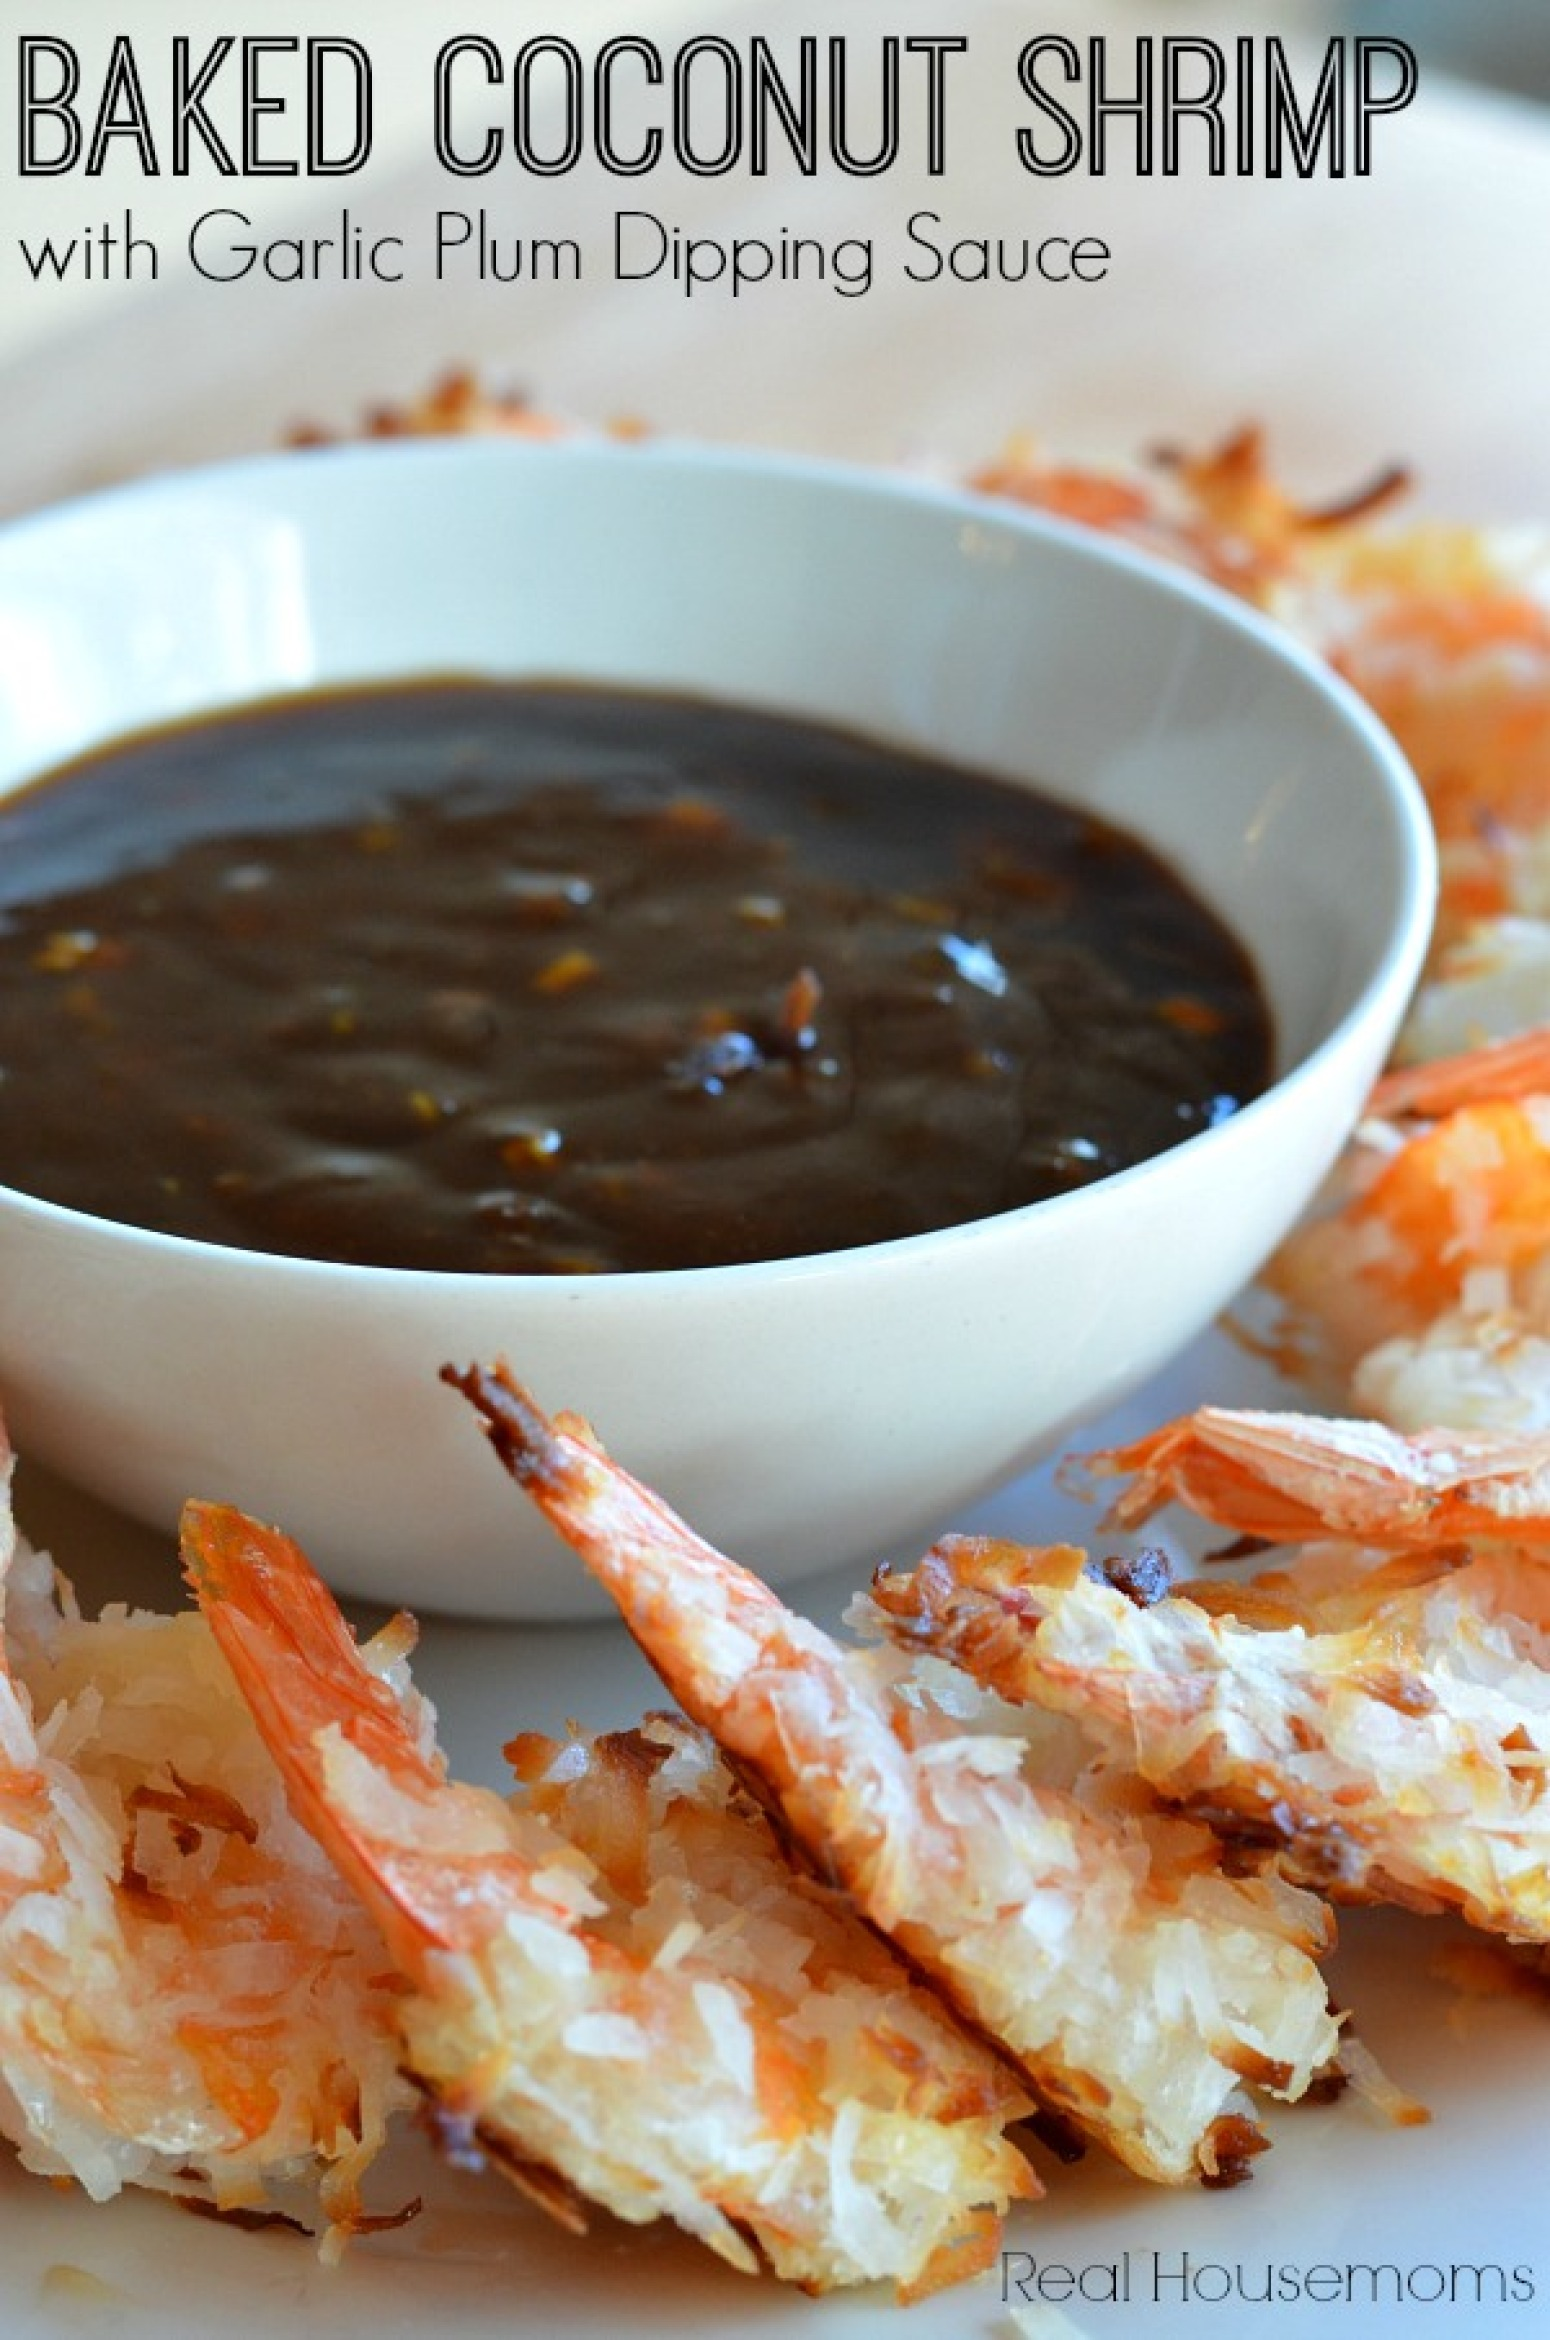 Baked Coconut Shrimp with Garlic Plum Dipping Sauce Recipe ...